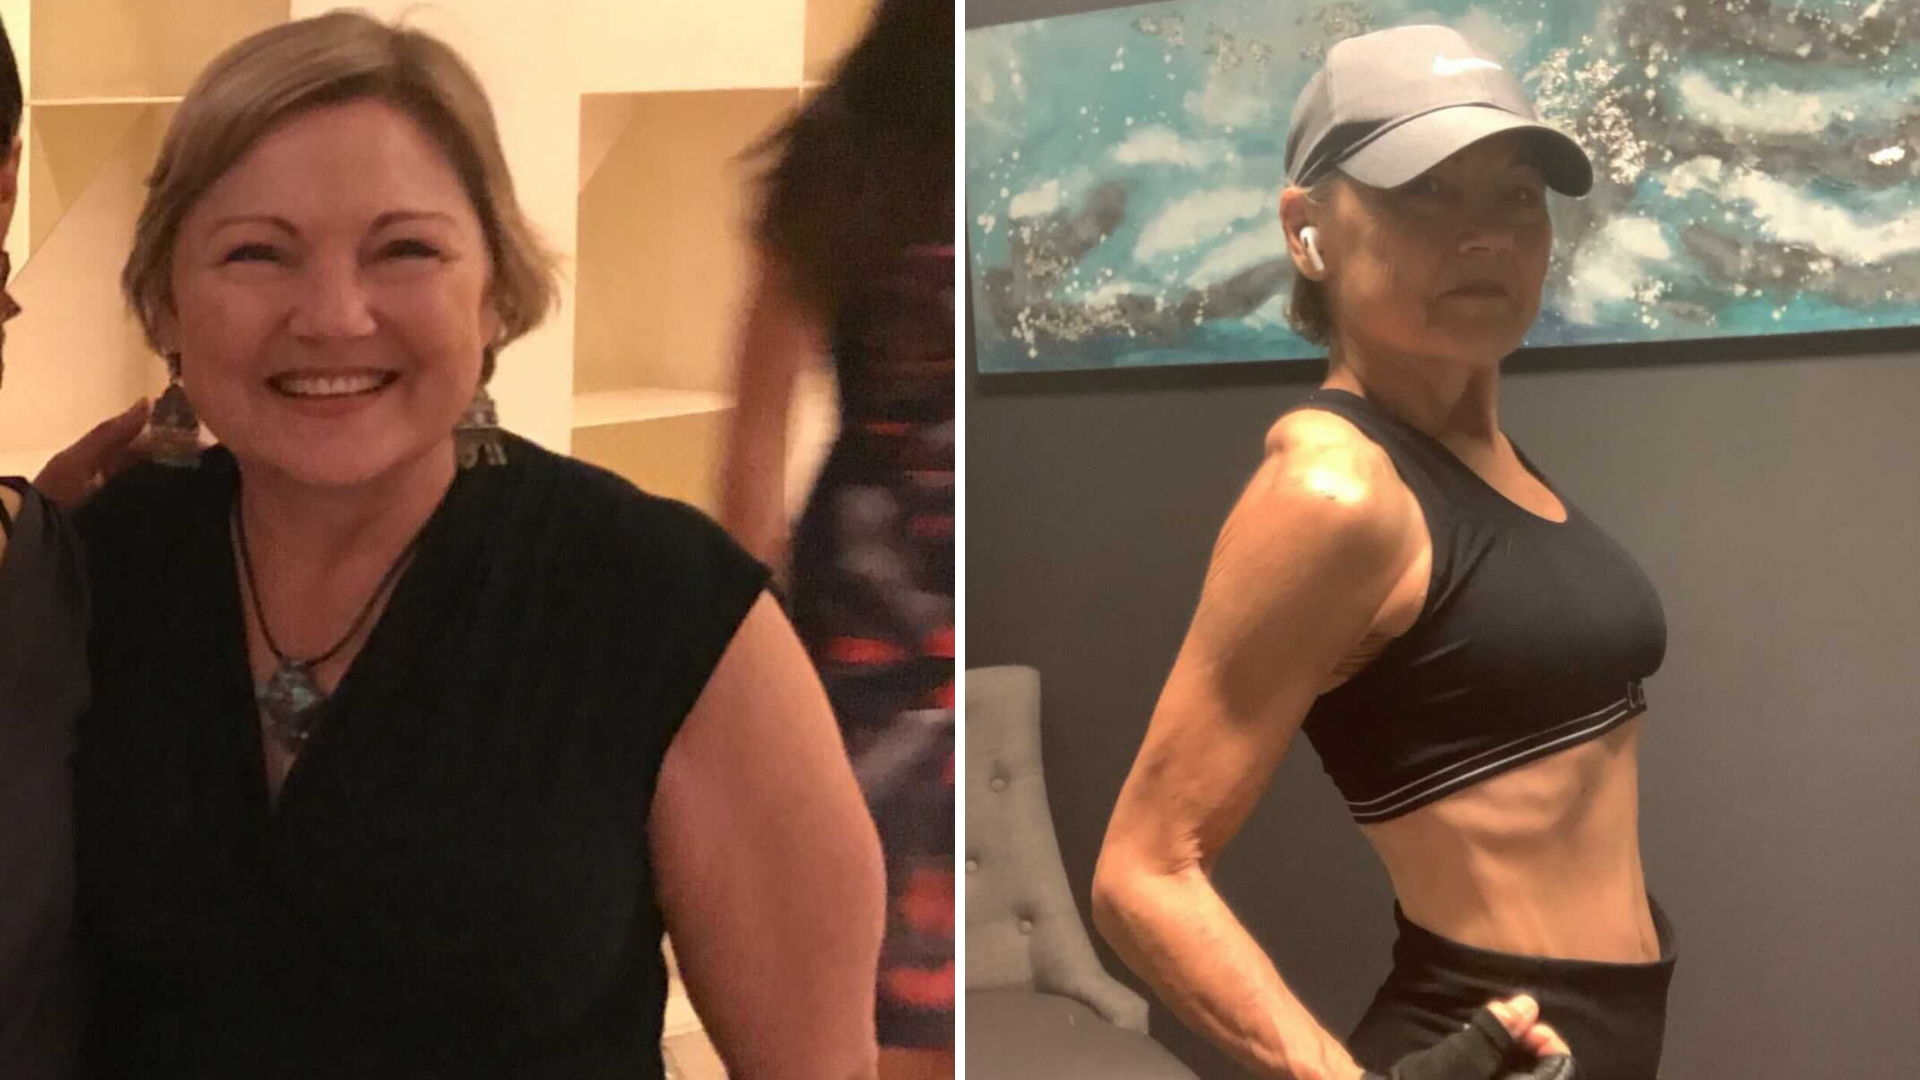 How This 64 Year Old Athlete Went From Multiple Organ Transplants To a Bikini Competition